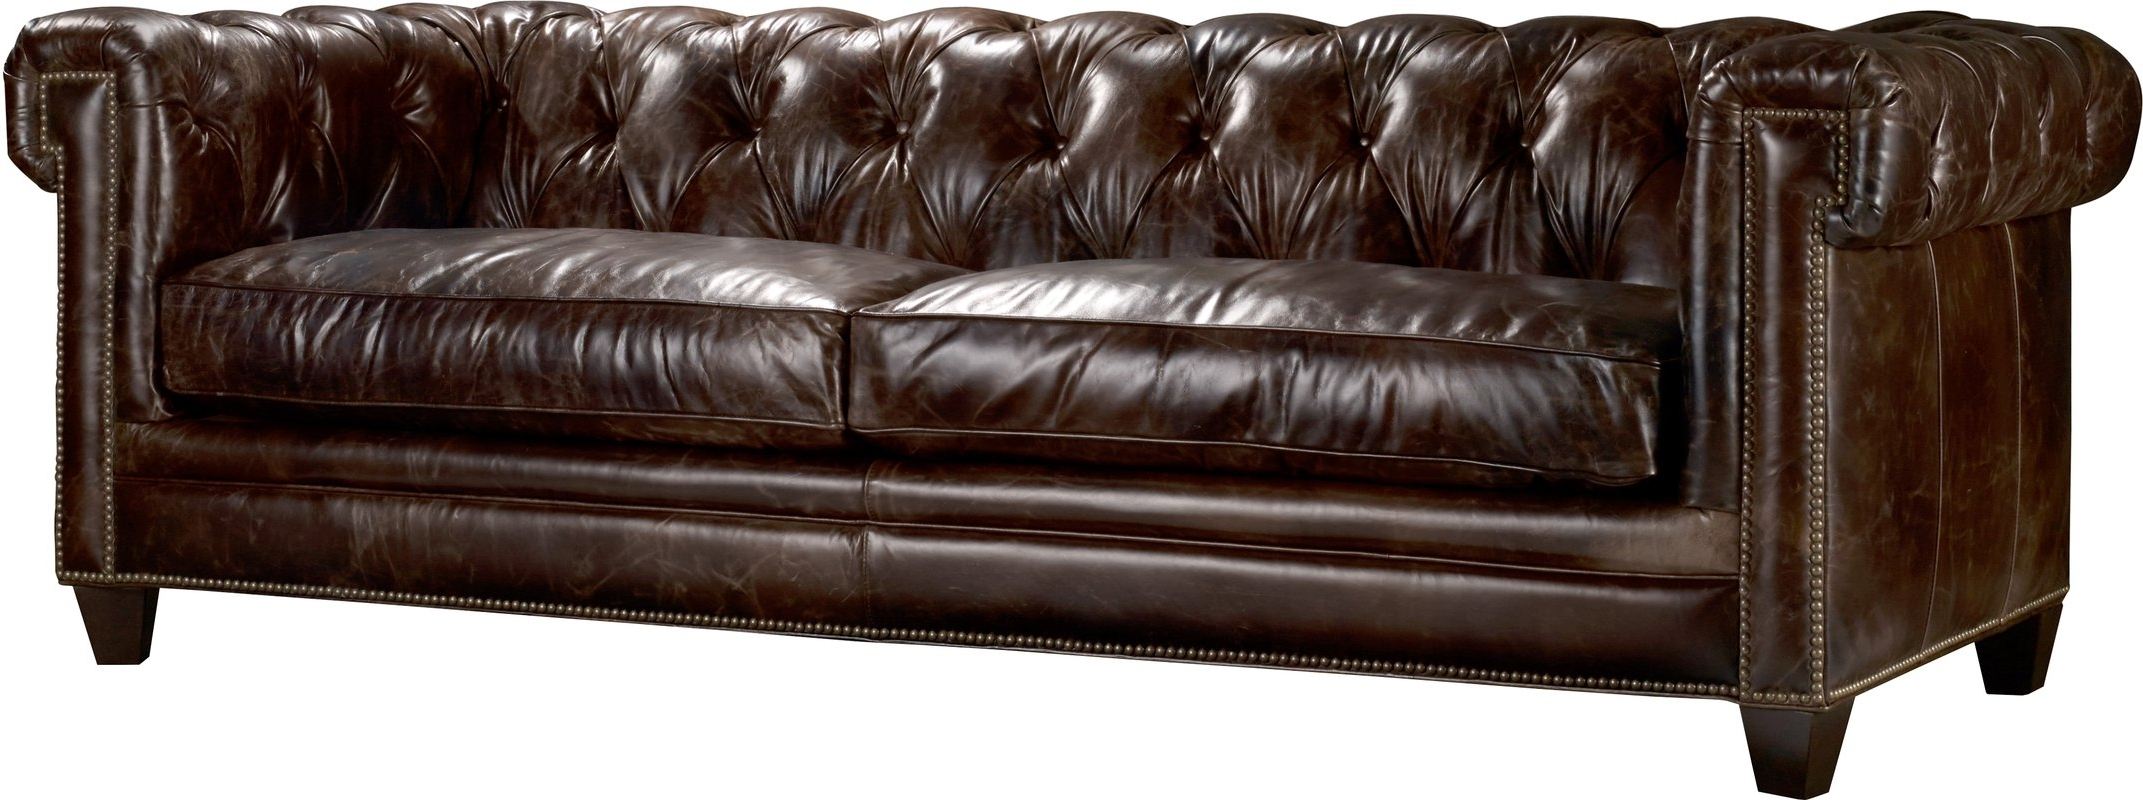 Chesterfield Sofas Regarding Famous Hooker Furniture Imperial Regal Stationary Leather Chesterfield (View 5 of 15)